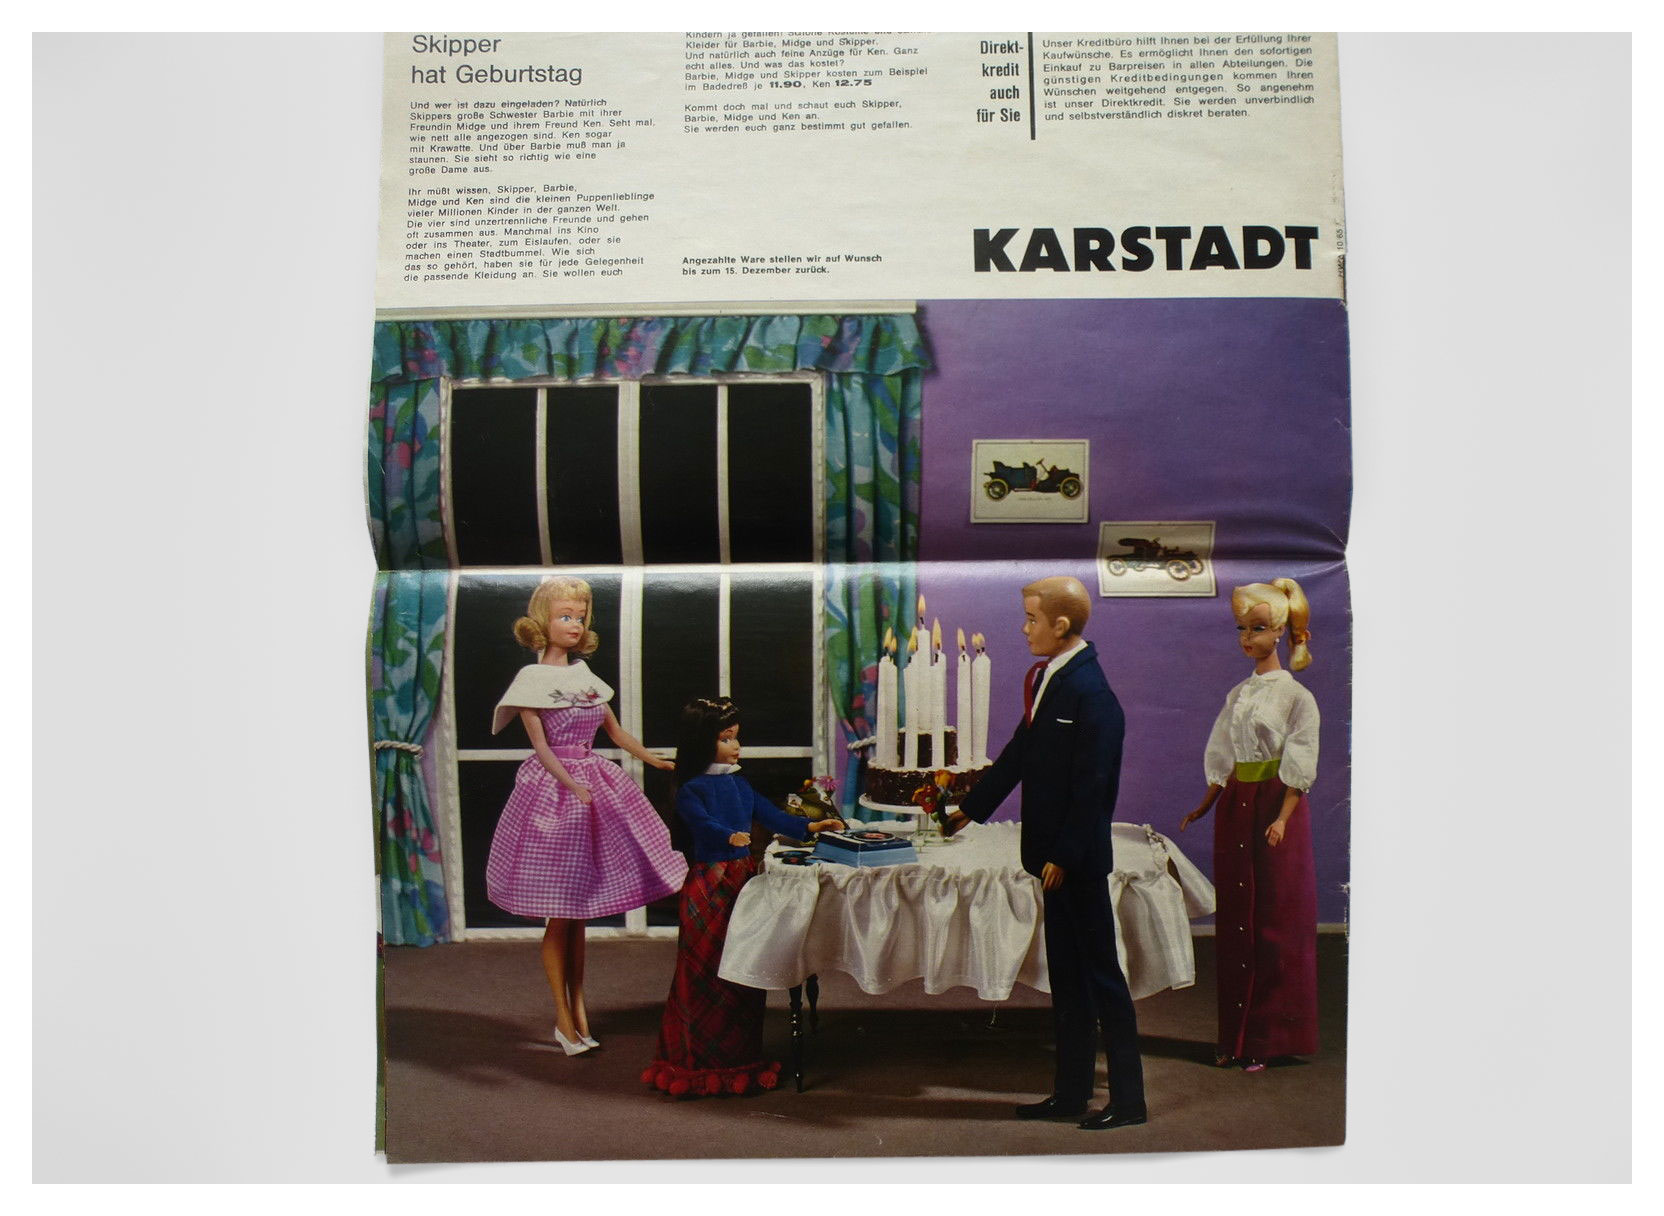 1965 German Karstadt toy catalogue